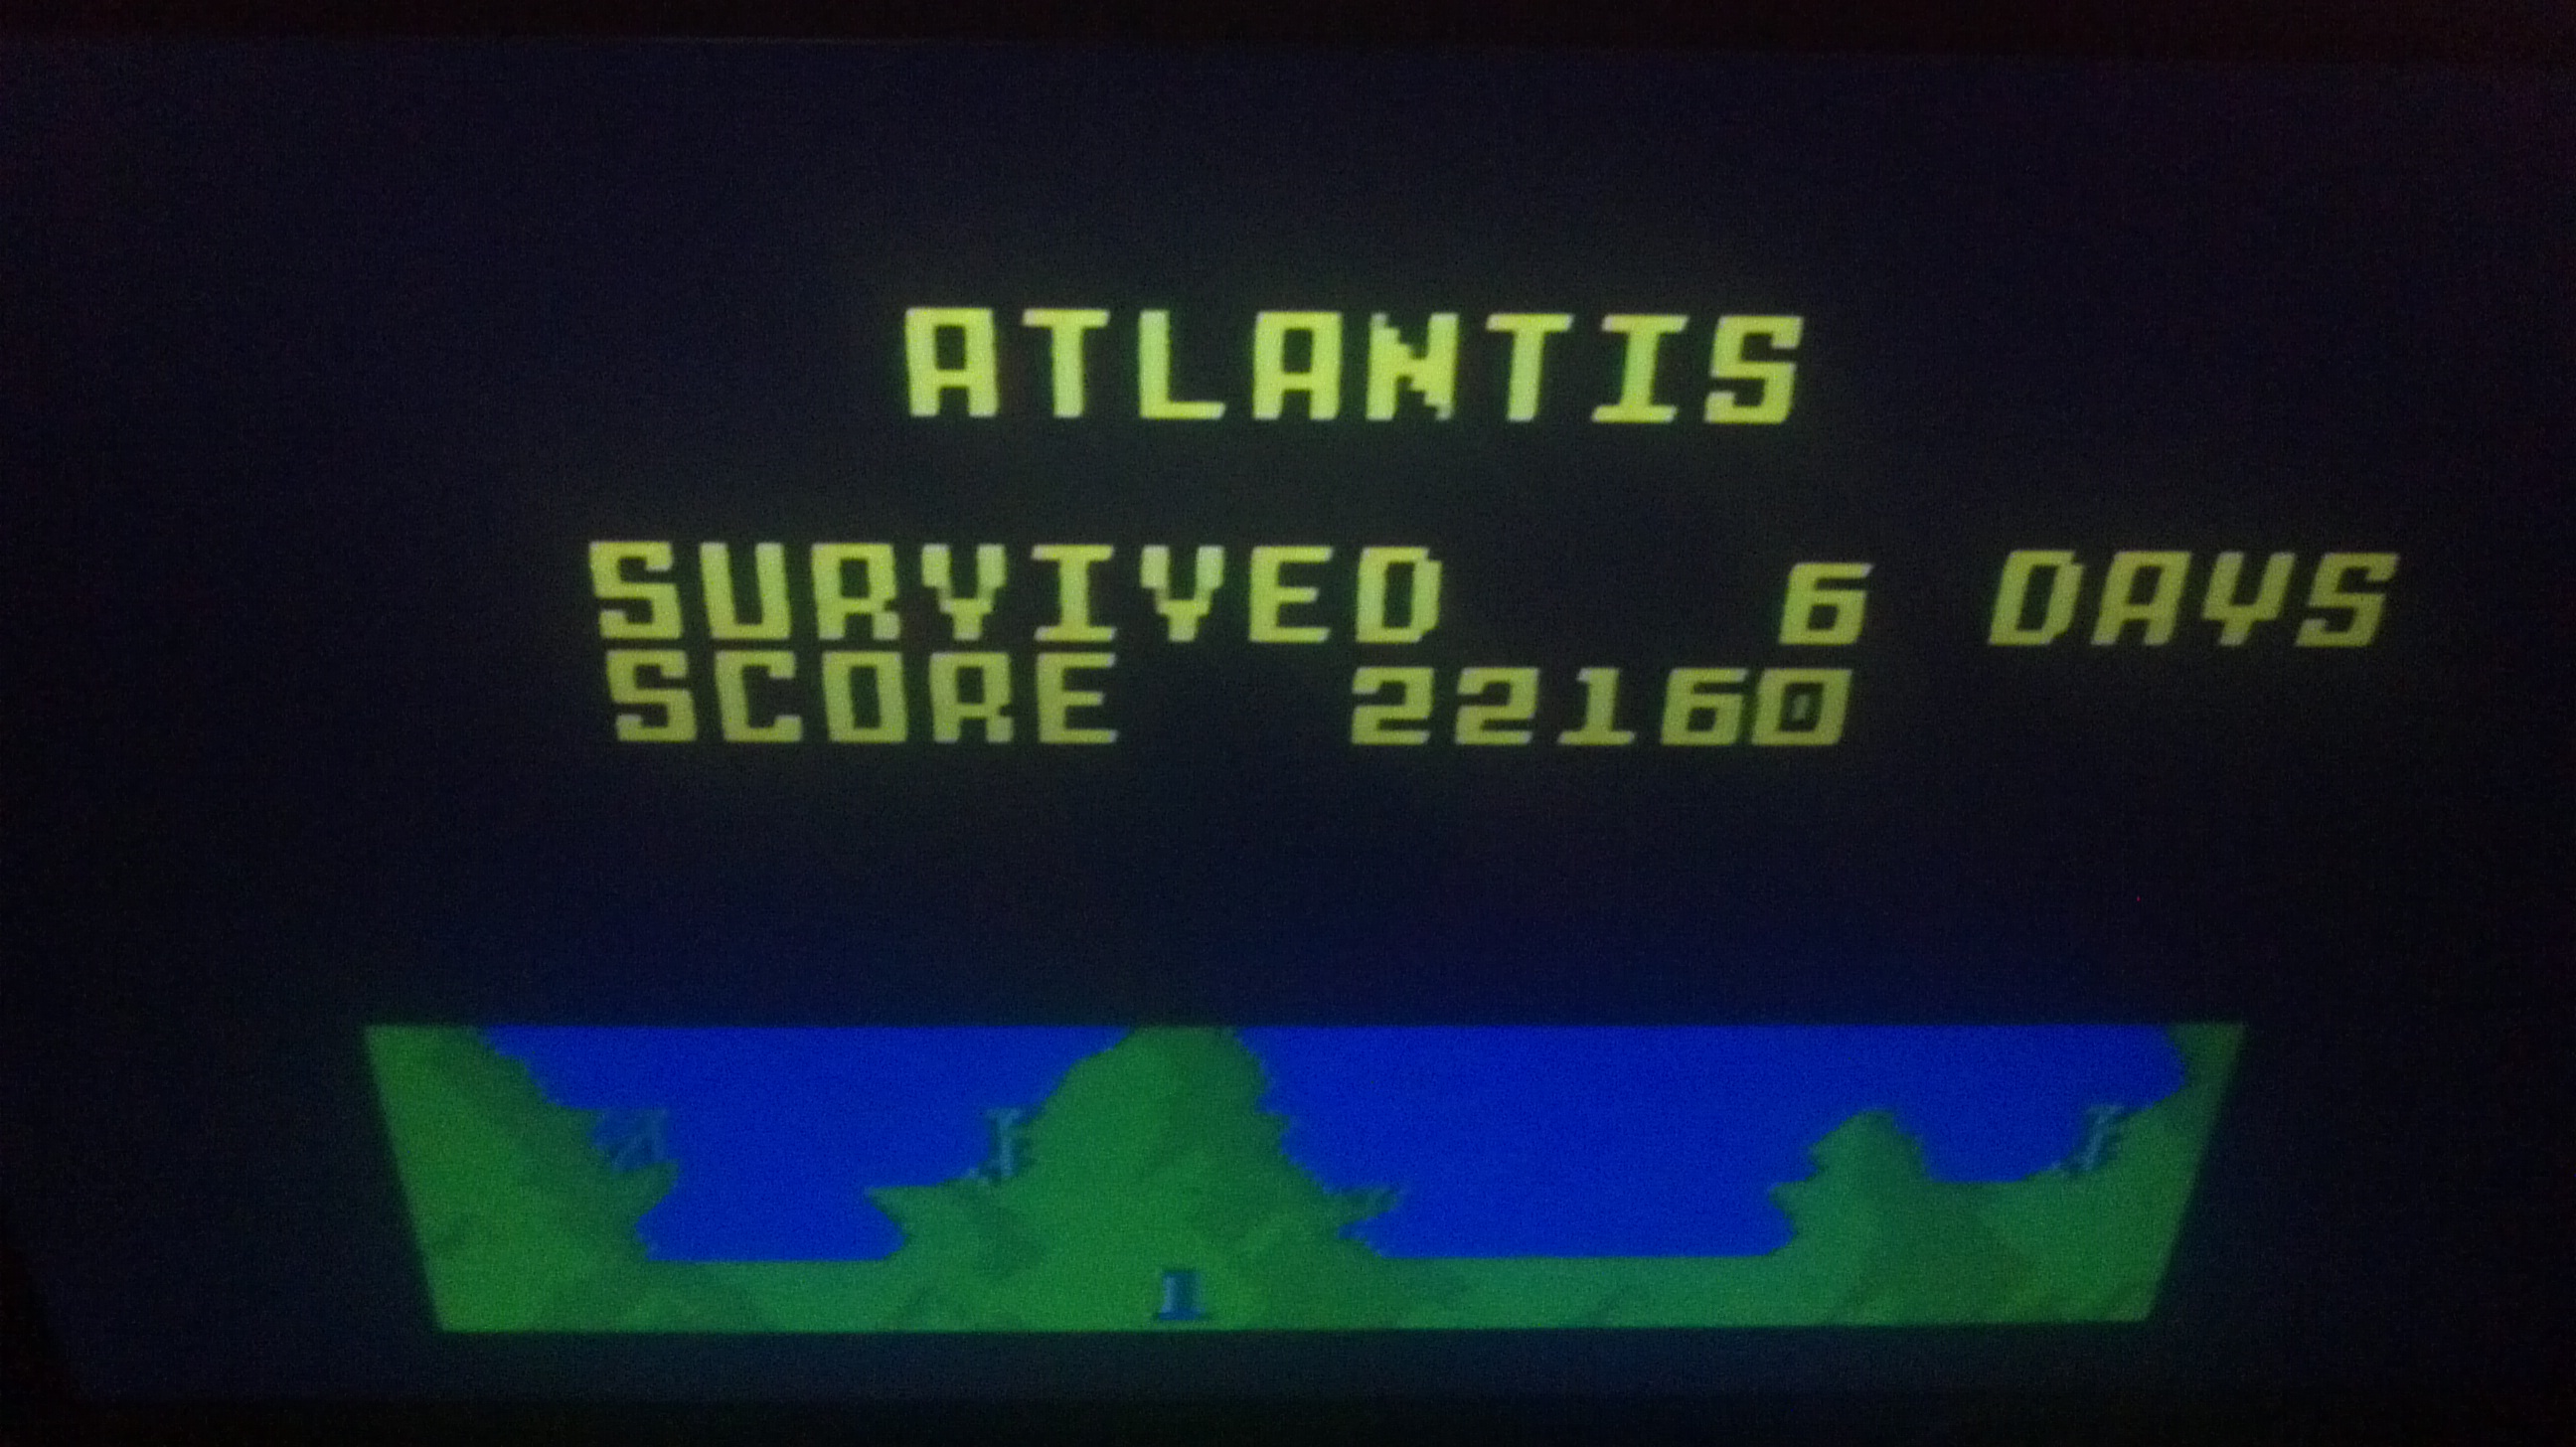 Atlantis: Easy 22,160 points